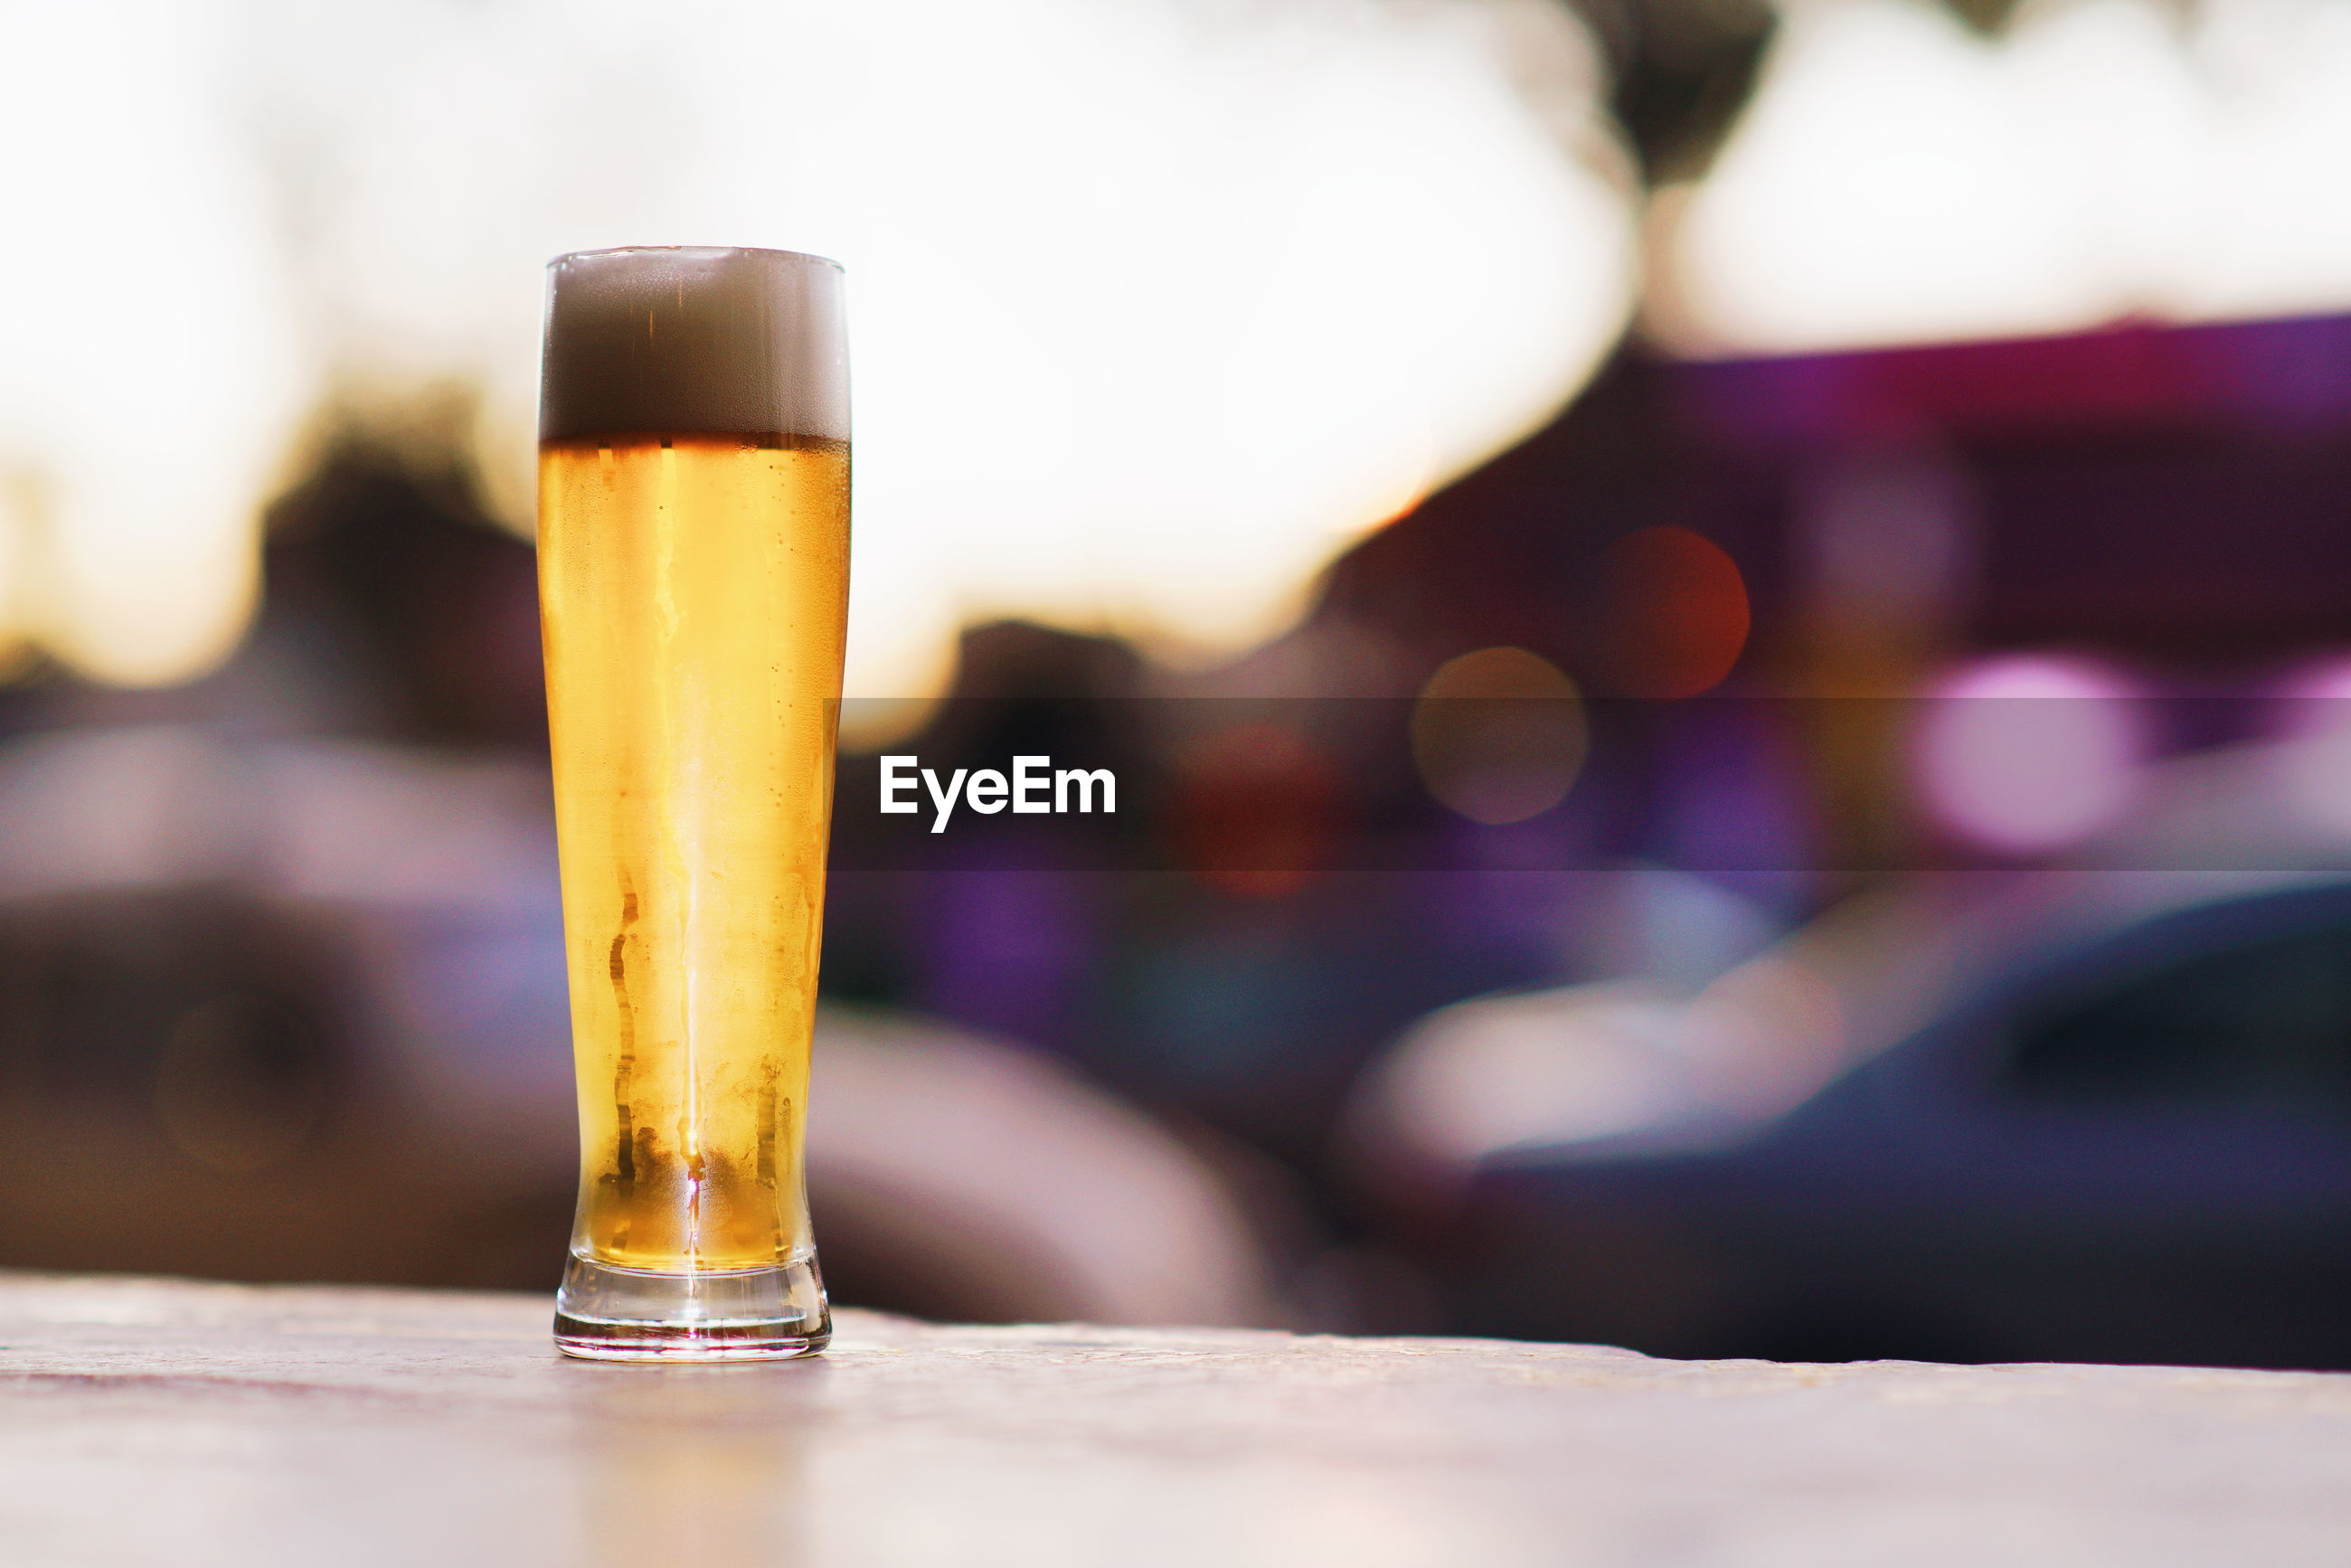 CLOSE-UP OF BEER ON TABLE